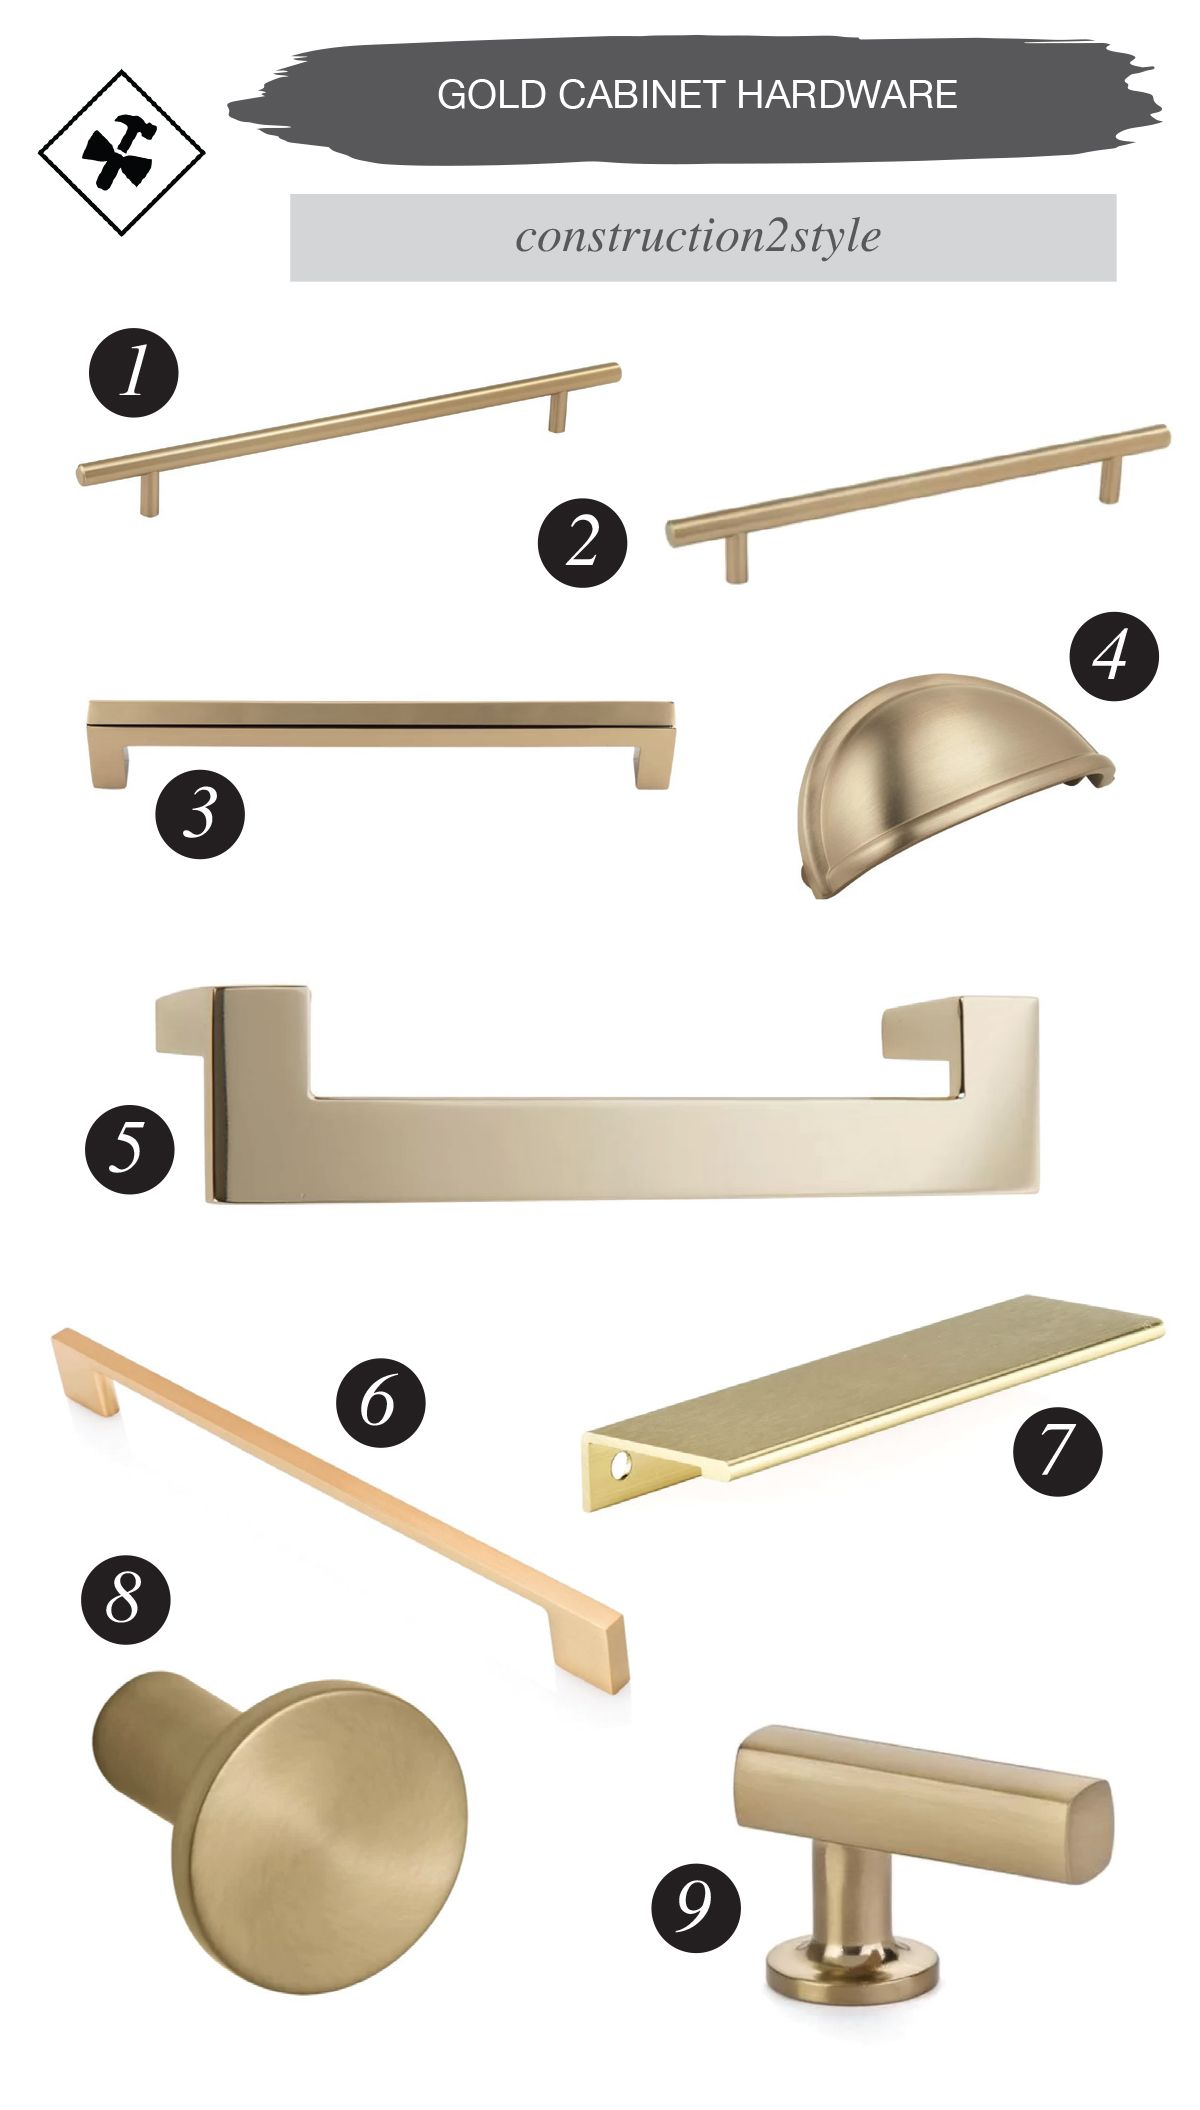 Top Gold Cabinet Hardware Options  Construction3style  Cabinetry